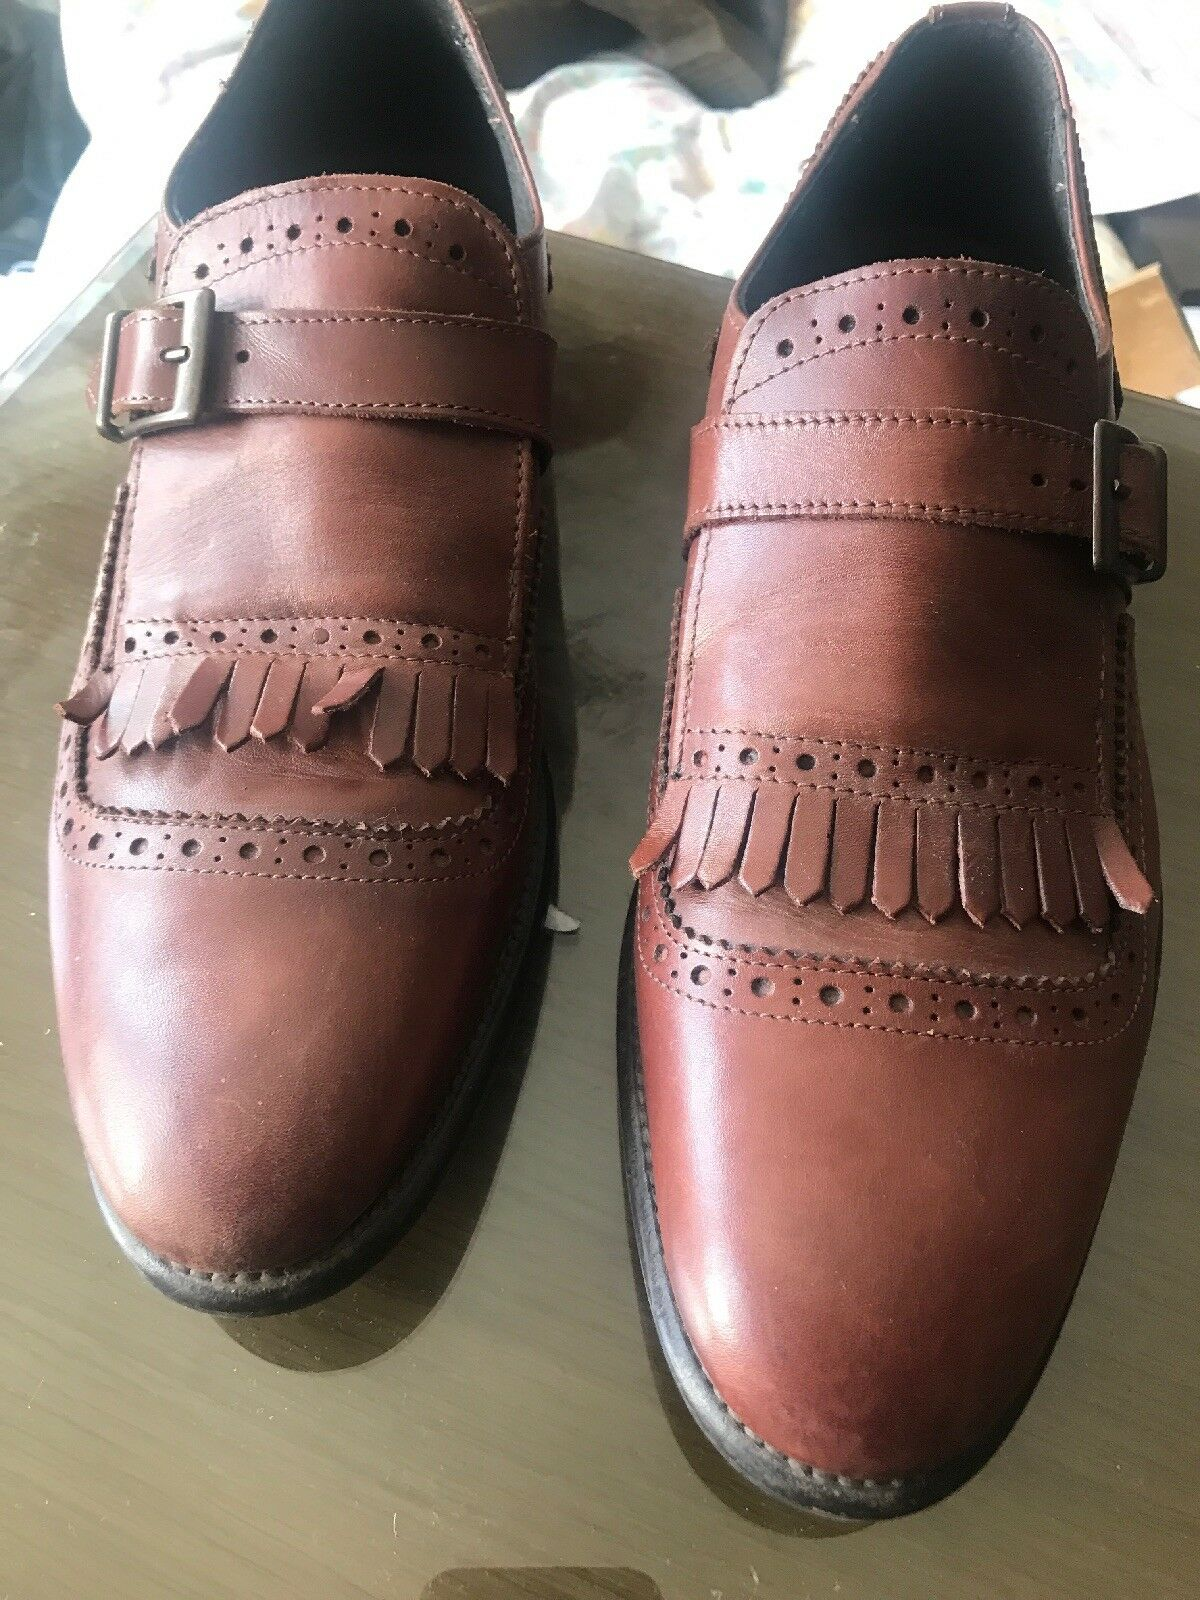 MONK STRAP STRAP STRAP SHOE WITH BROGUE AND TASSEL DETAILING aa6409